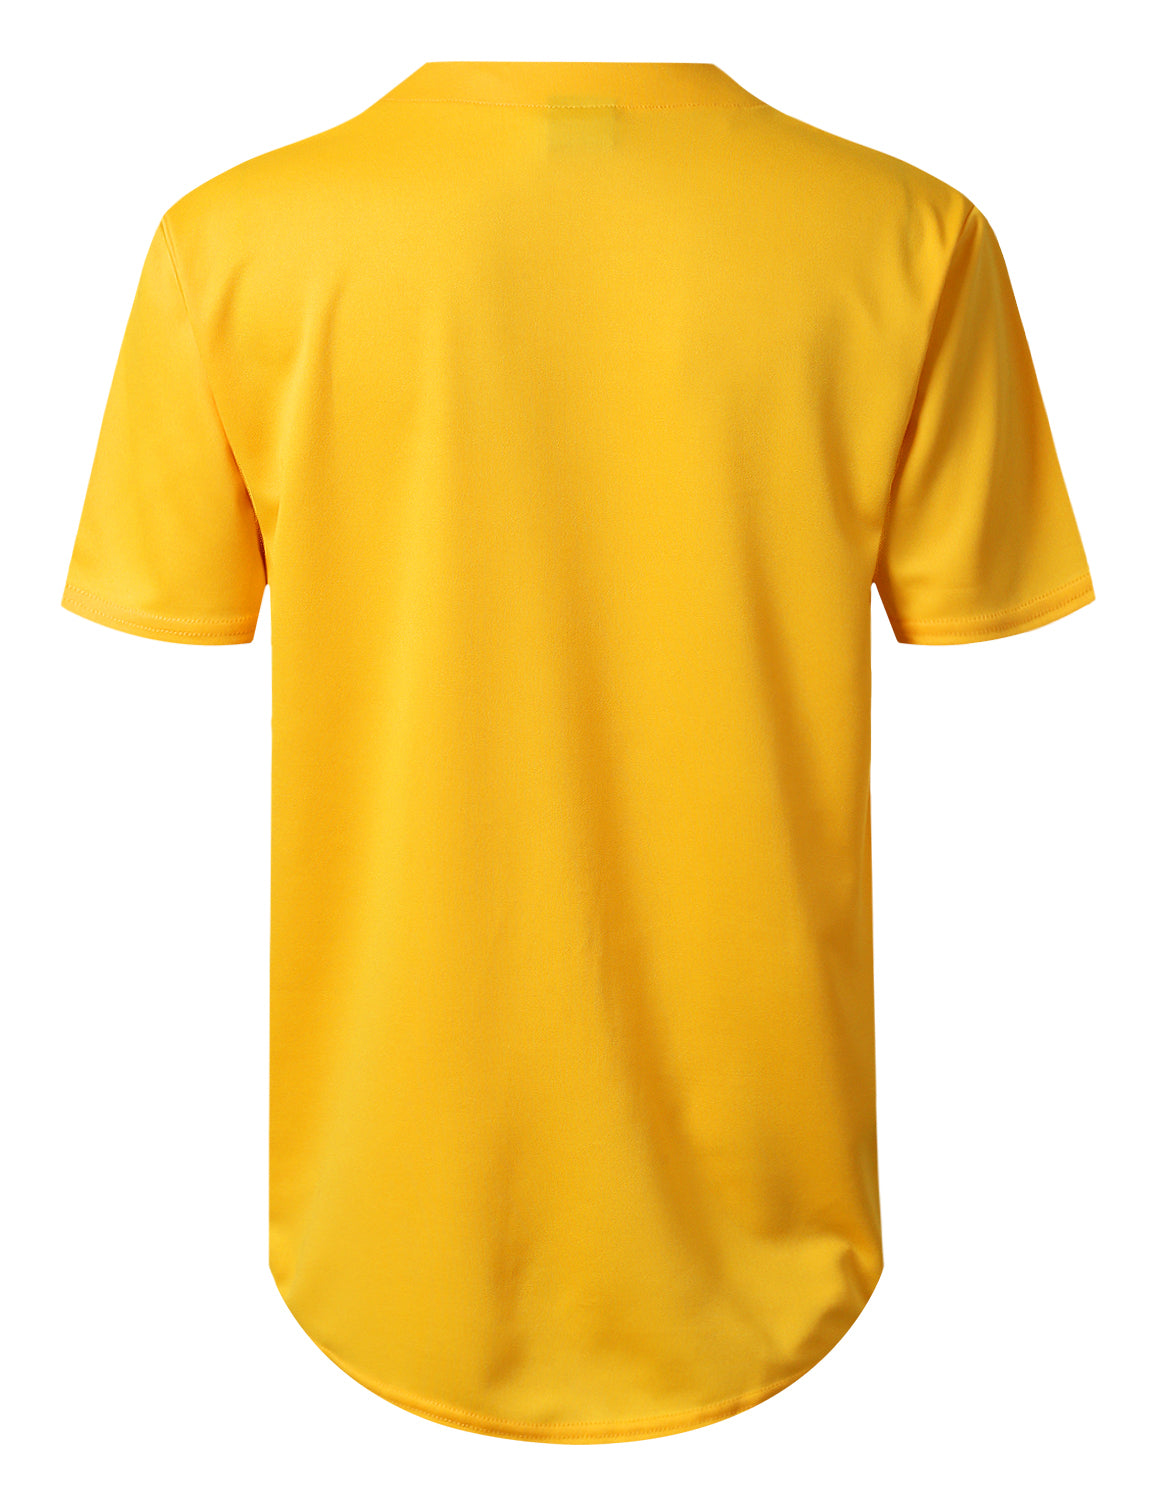 YELLOW Basic Solid Baseball Jersey Shirt - URBANCREWS